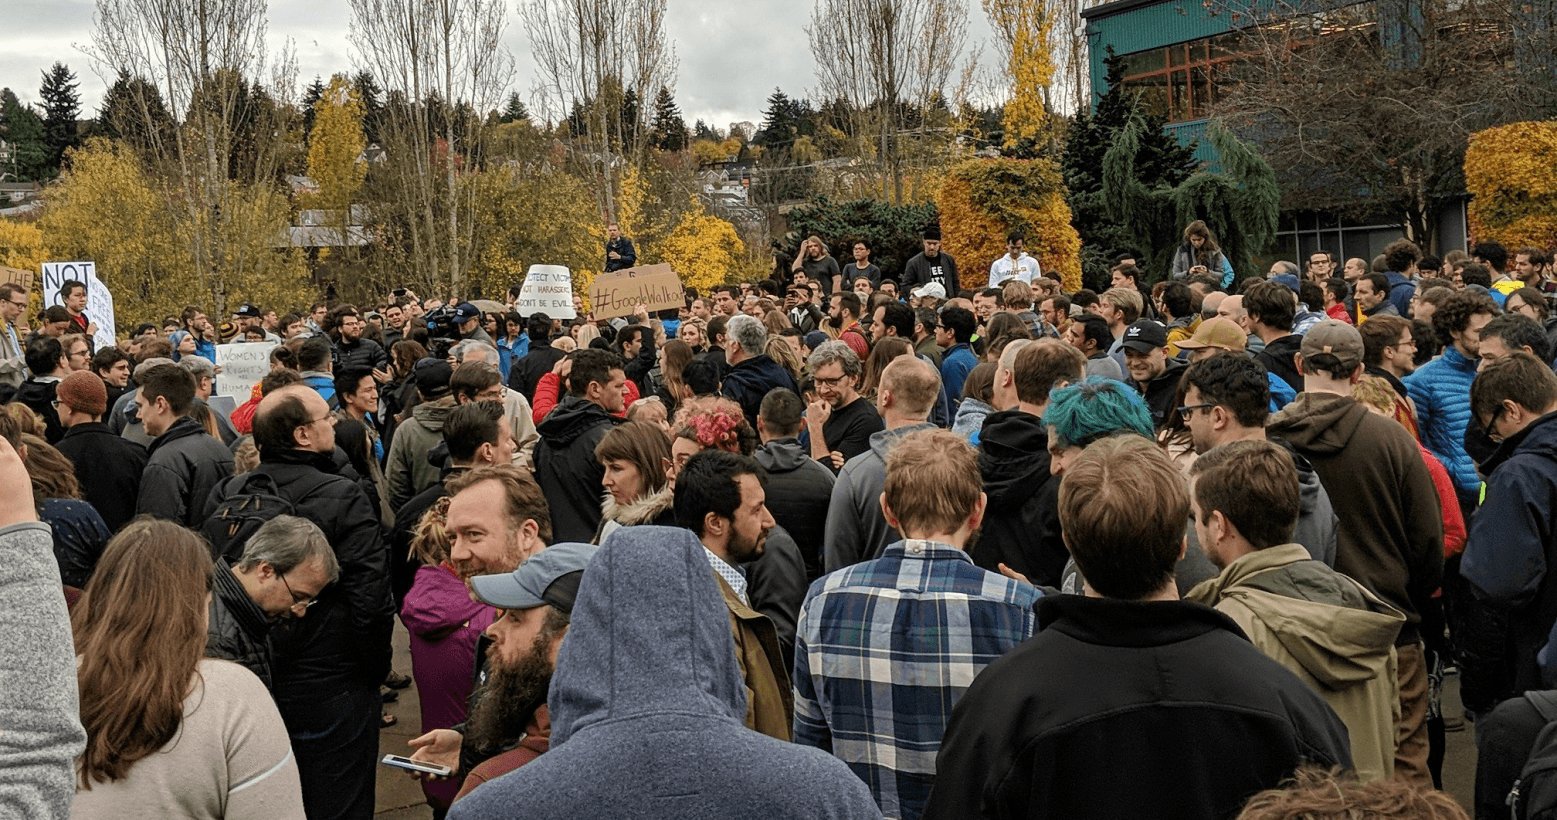 Punished for Speaking Up: Google Walks Back on Google Walkout Organizers